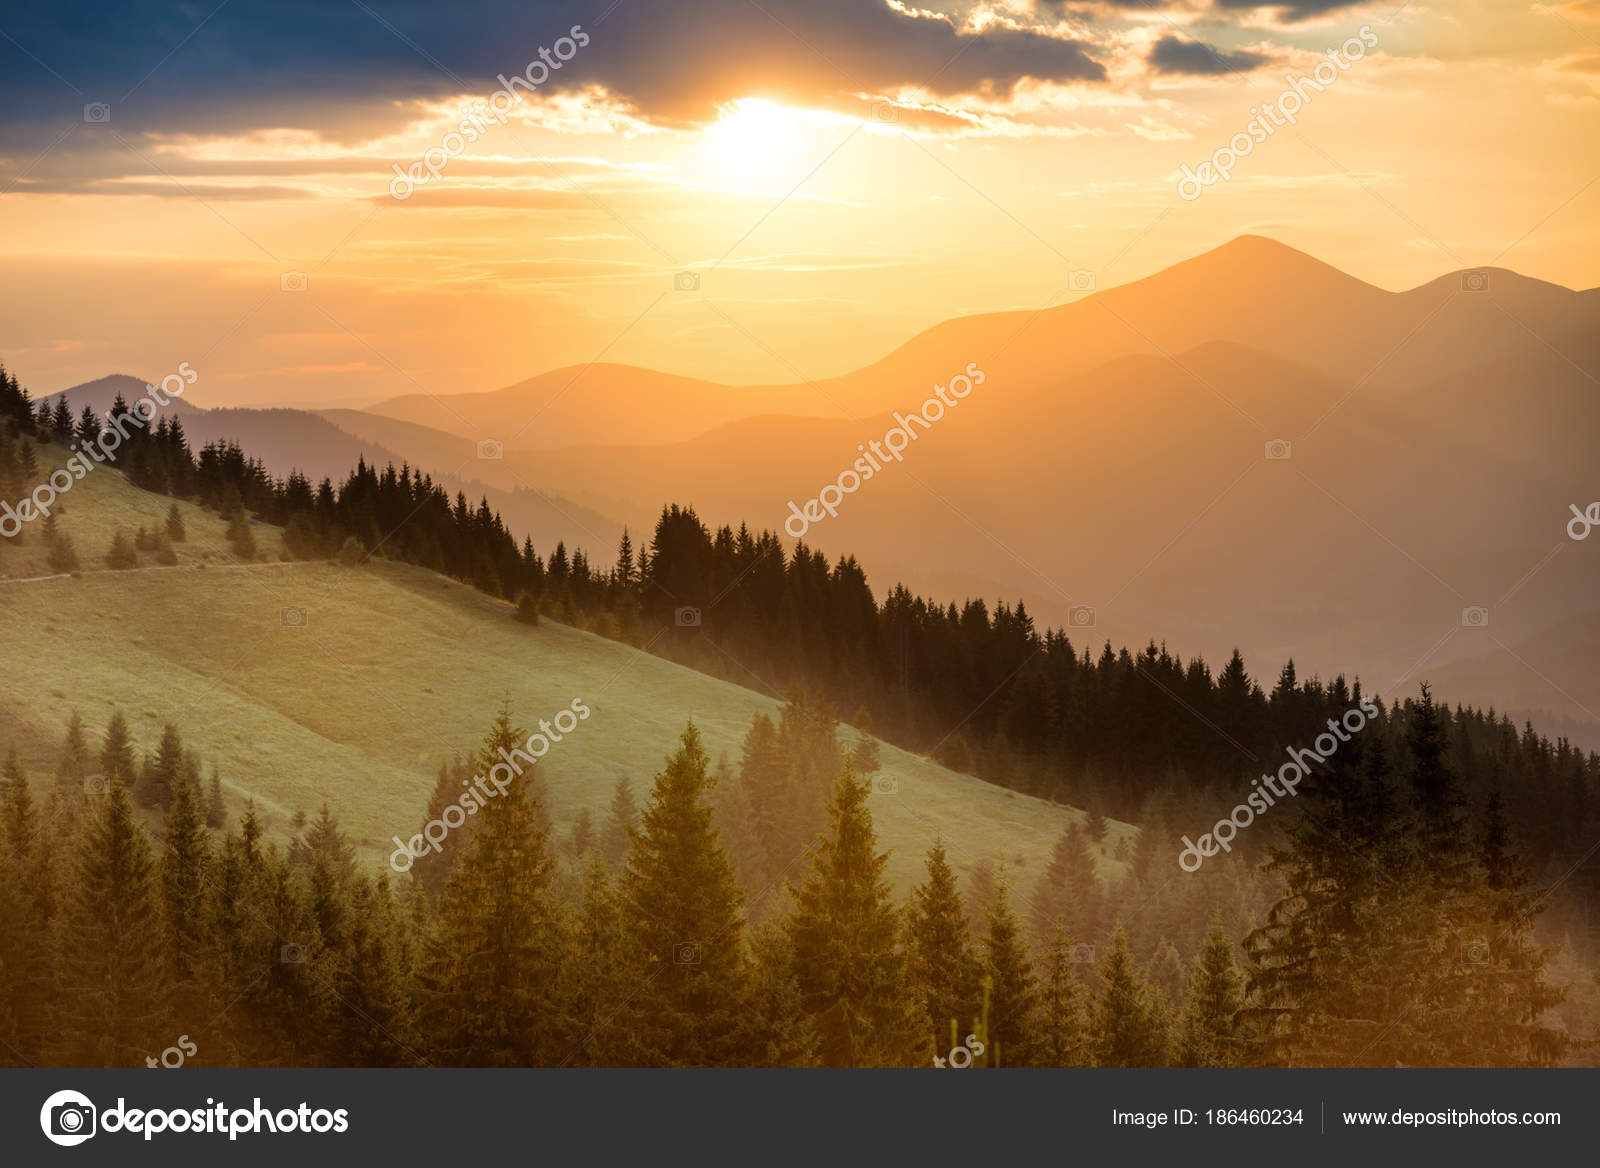 Beautiful Dramatic Sunset In The Mountains Landscape With Sun Shining Through Orange Clouds Photo By Dovapi